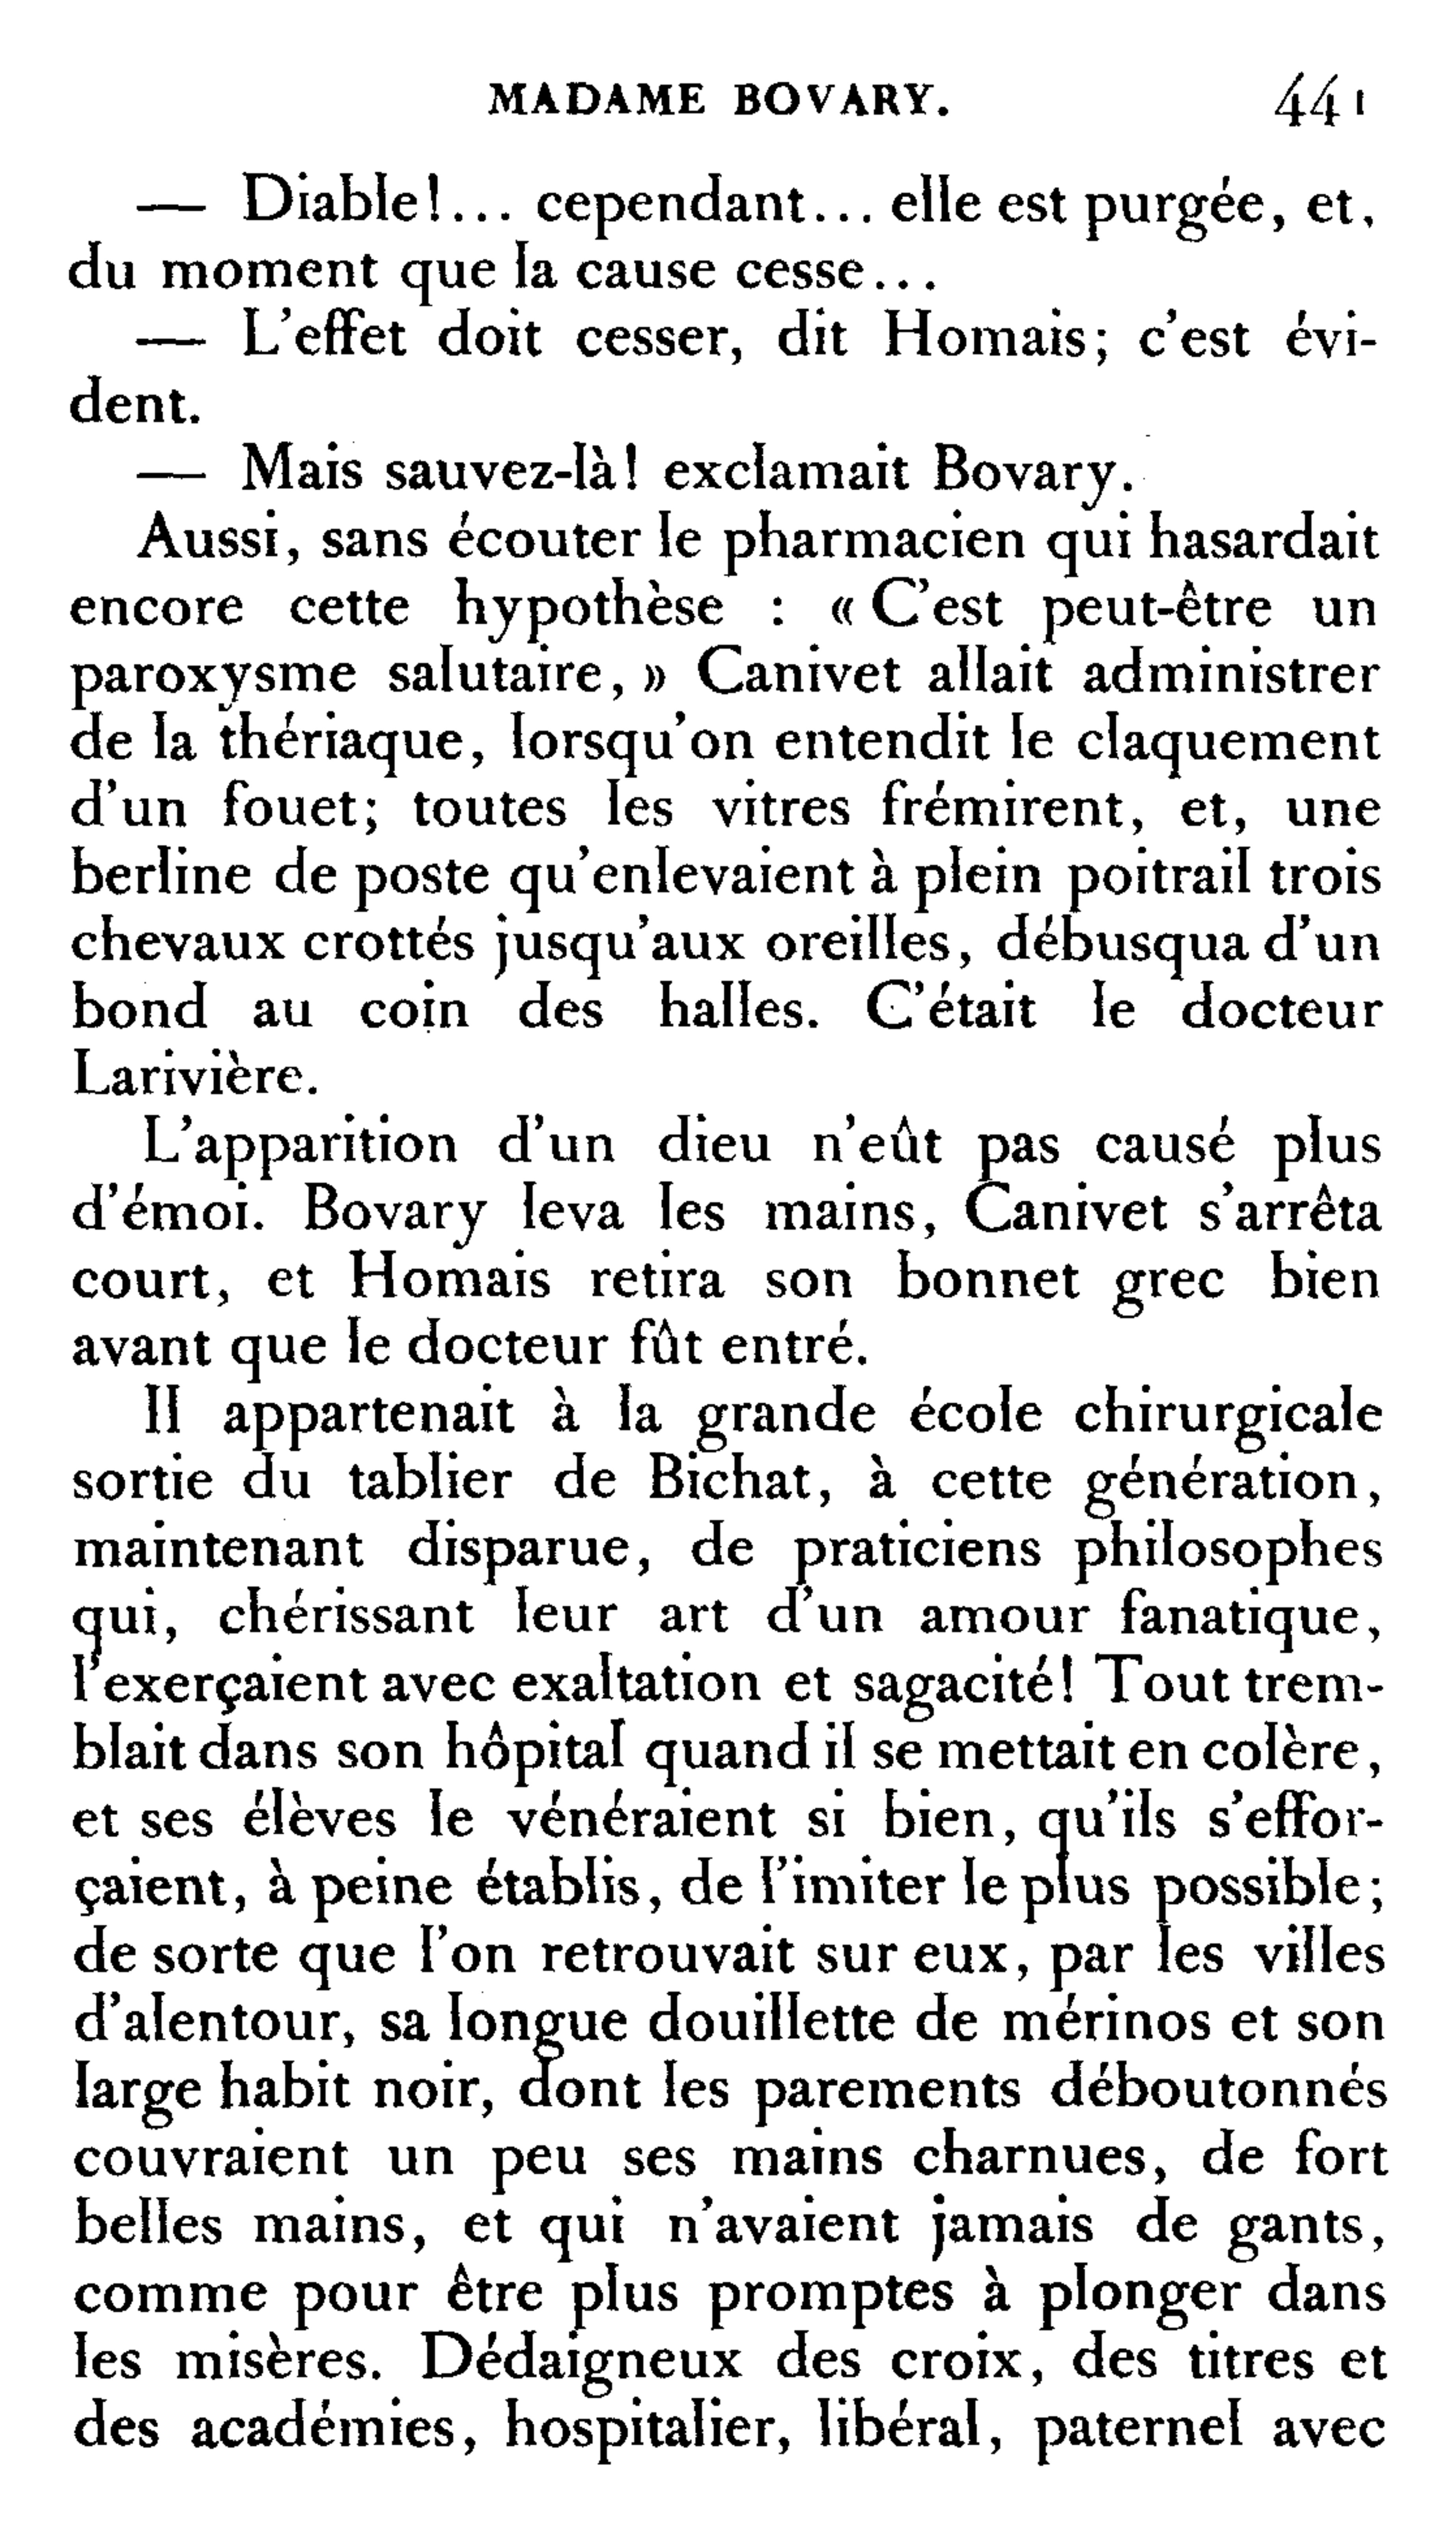 madame bovary homais An analysis of homais as an instrument of satire in flaubert's satiric novel, the story's apothecary is used to convey flaubert's views of the madame bovary.